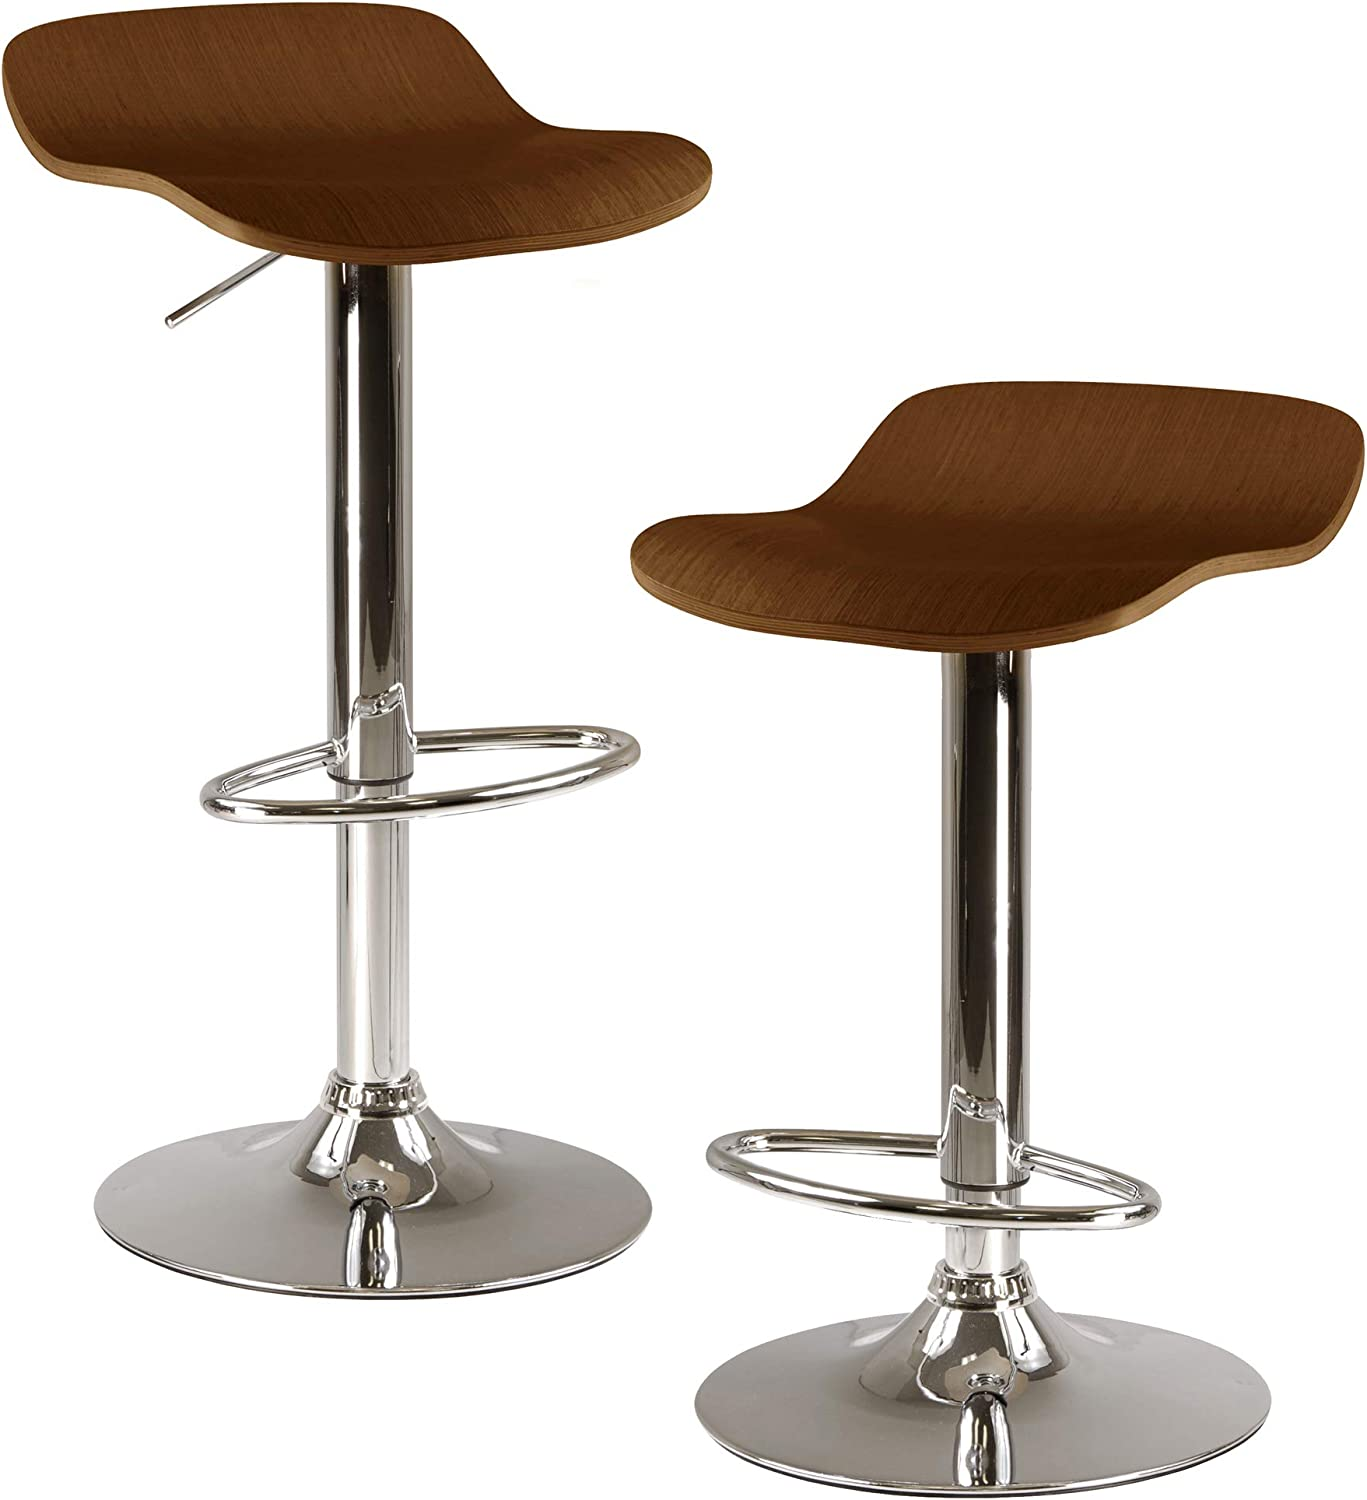 Winsome Wood Kallie Air Lift Adjustable Stools in Wood Veneer with Cappuccino color and Metal Base, Set of 2